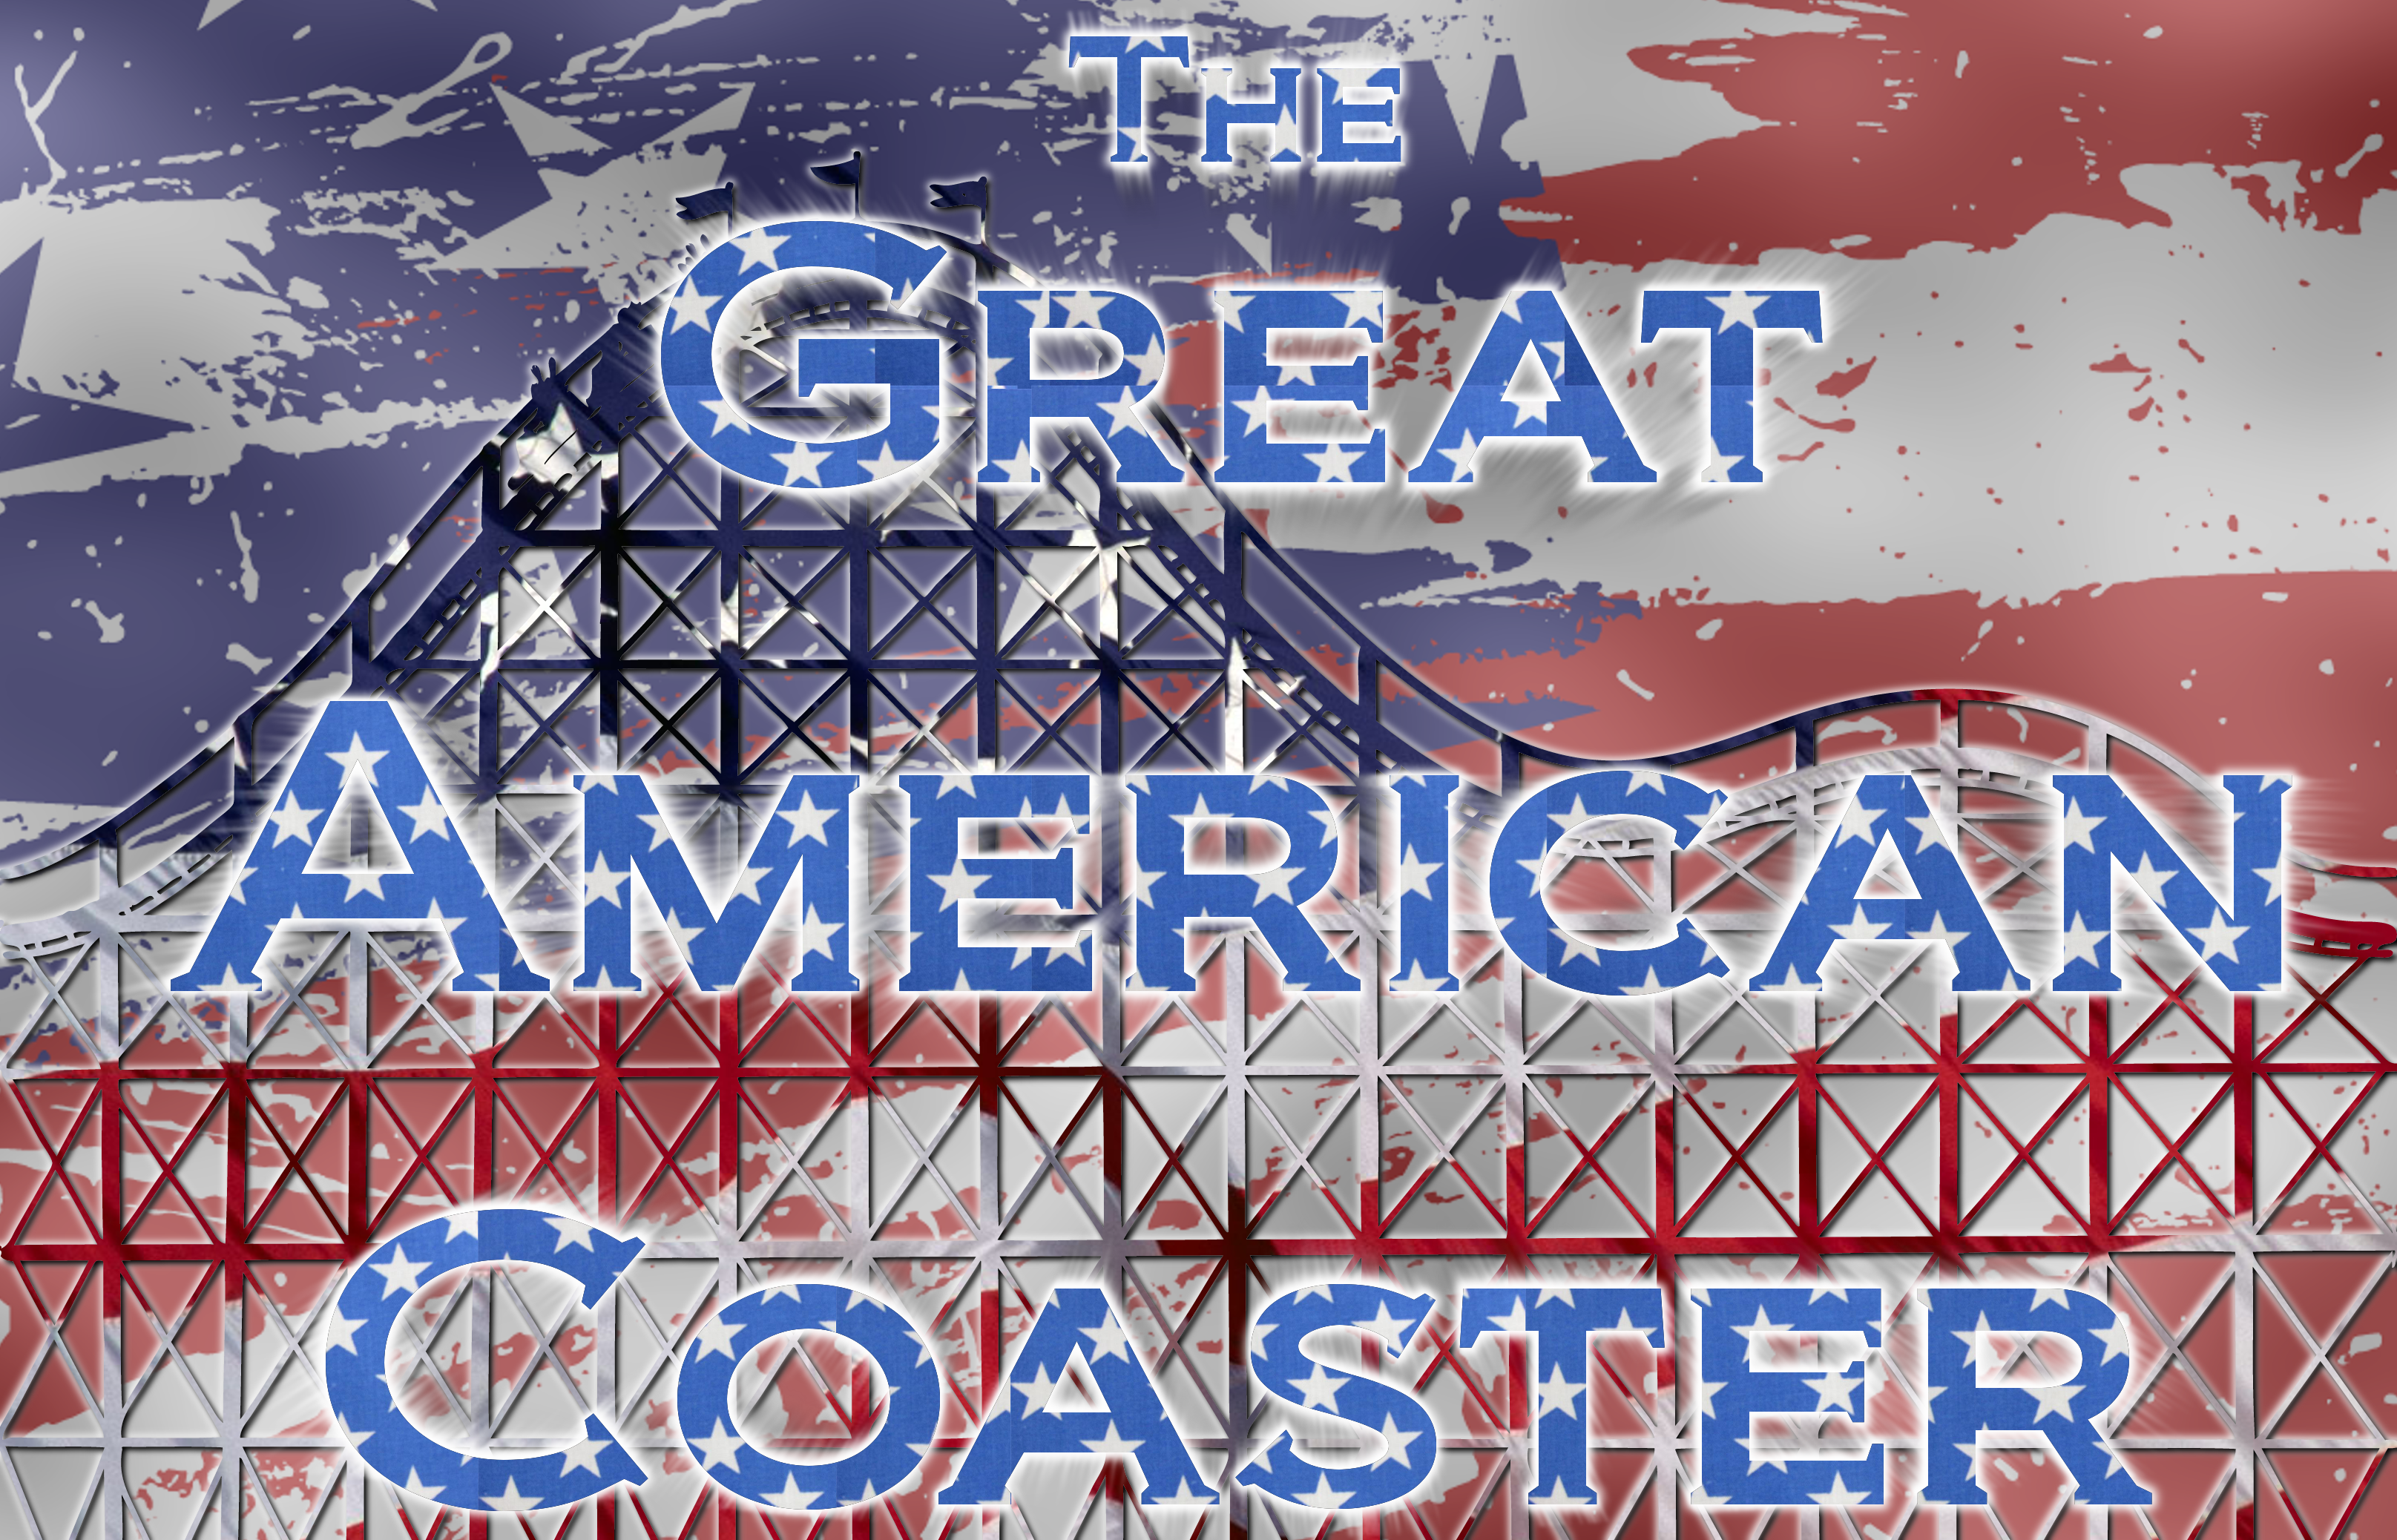 Great American Coaster